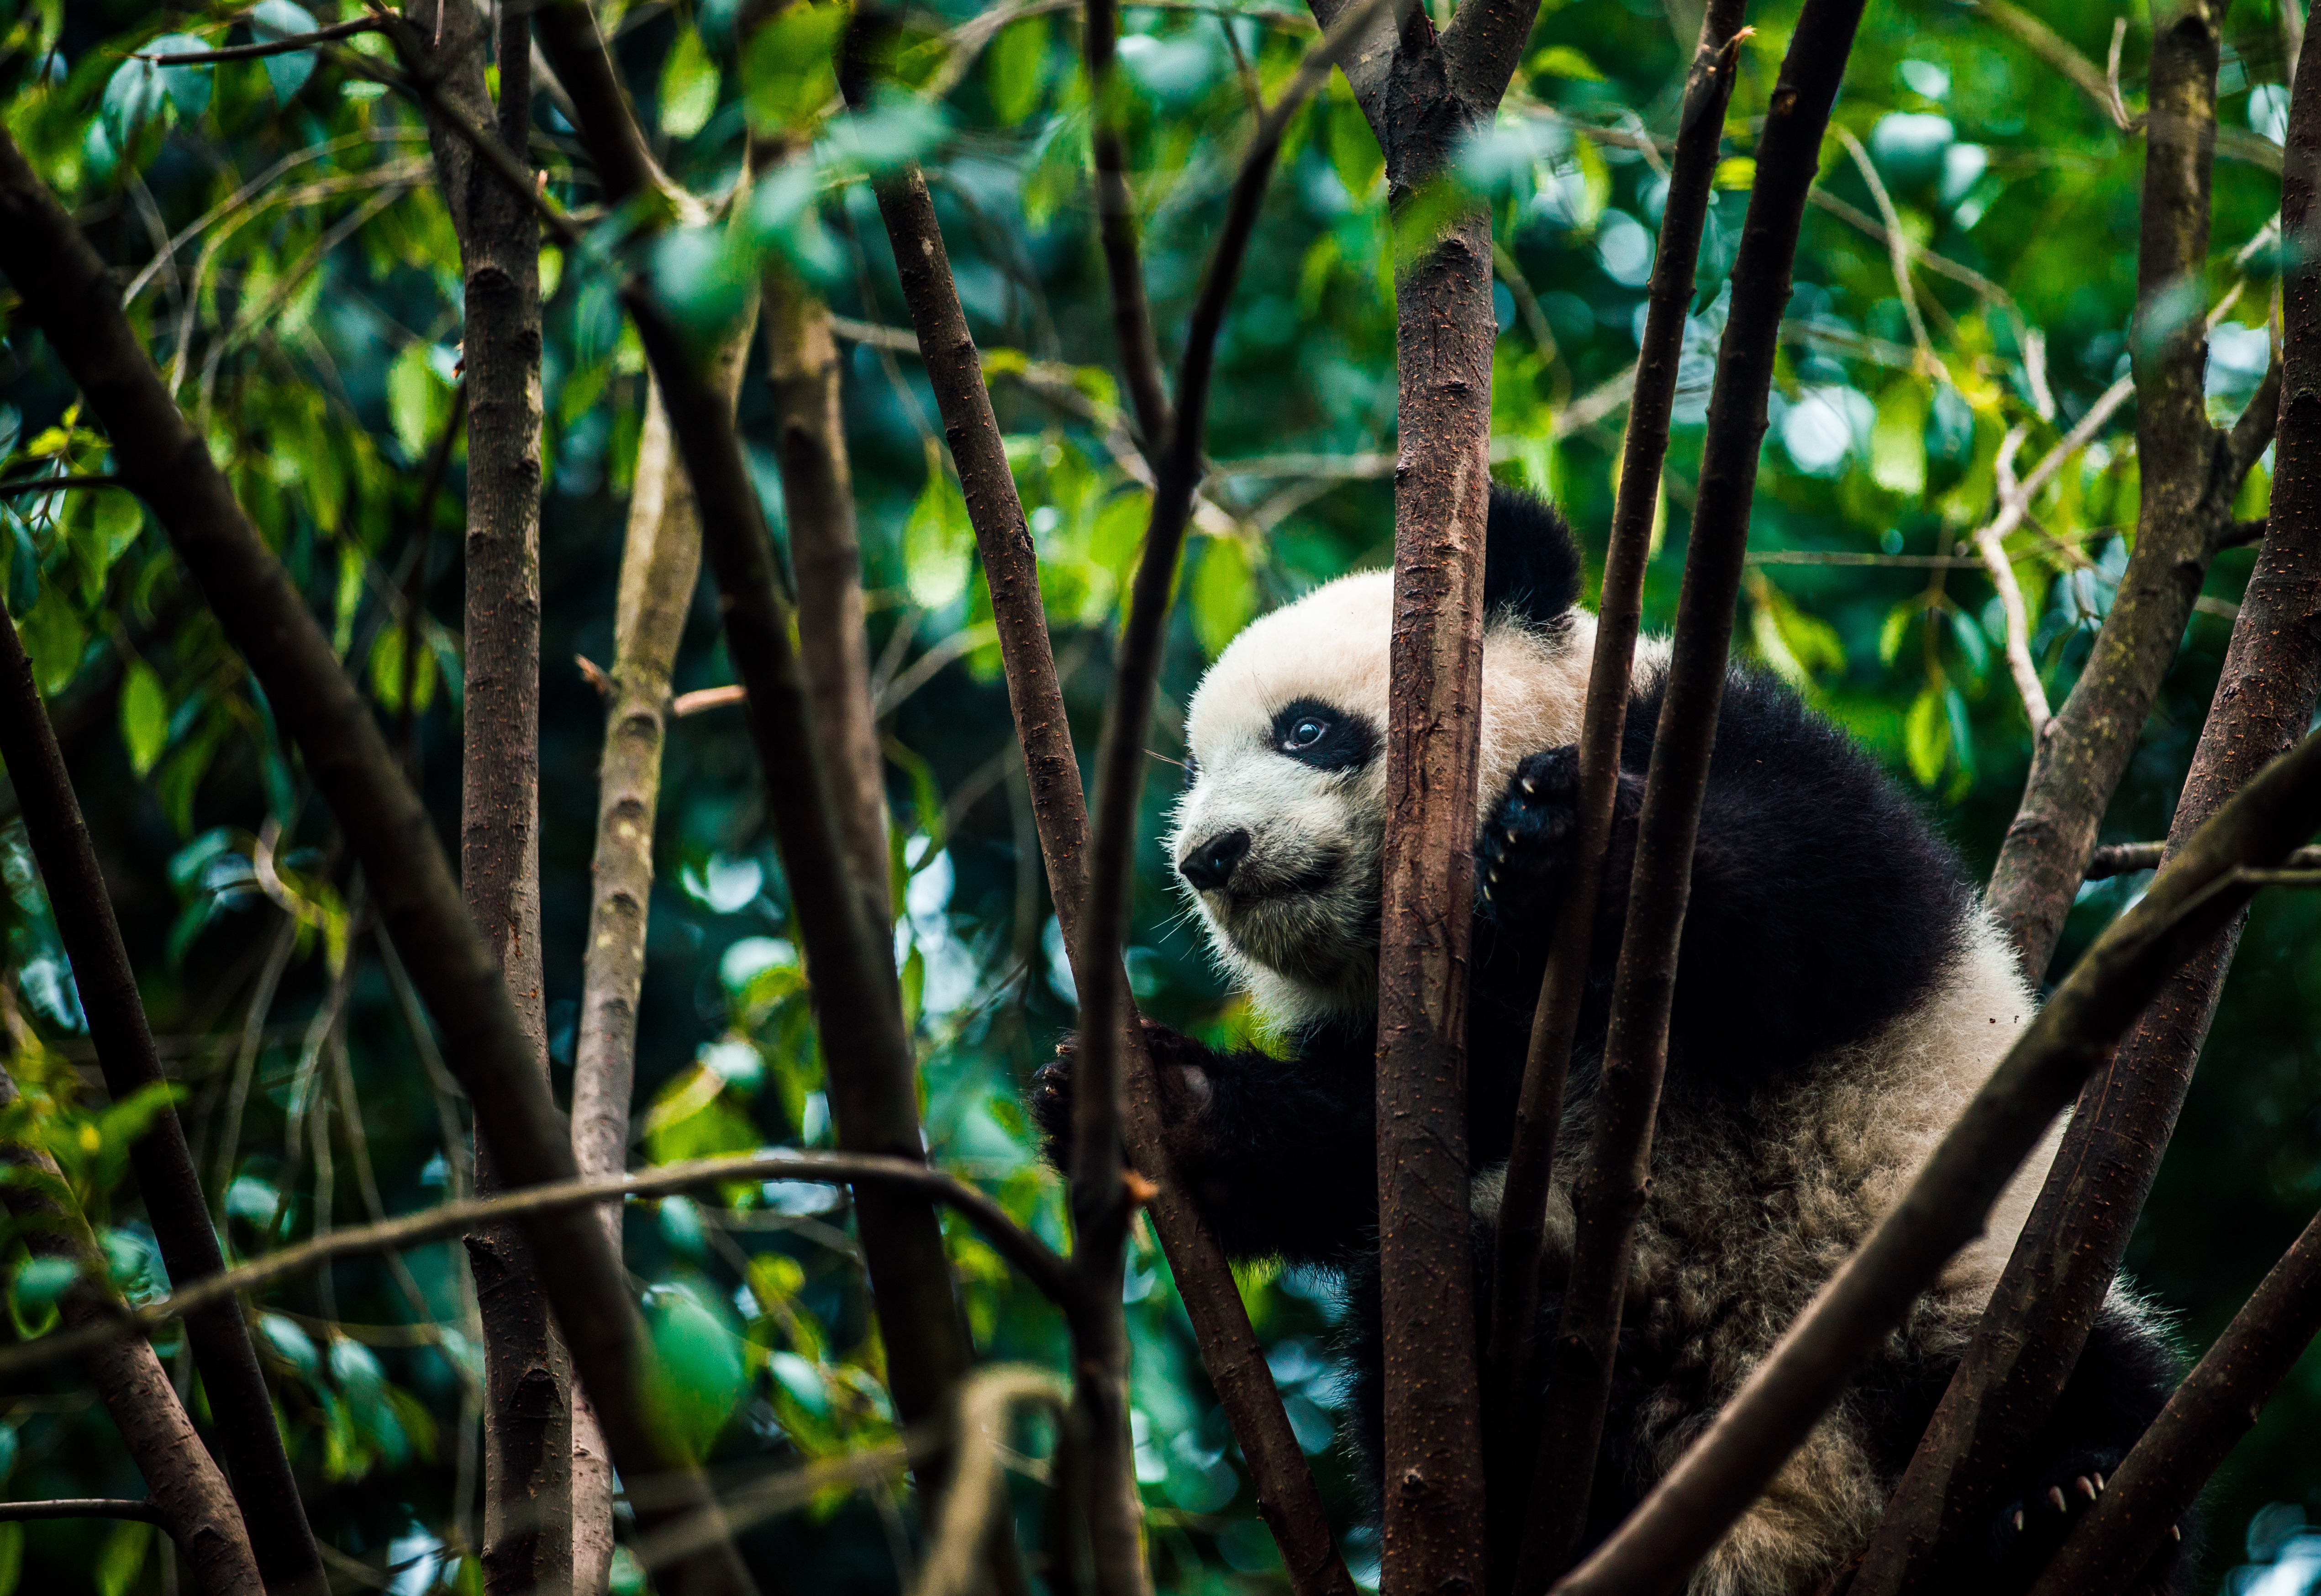 85270 download wallpaper Animals, Panda, Bear, Bamboo, Branches screensavers and pictures for free